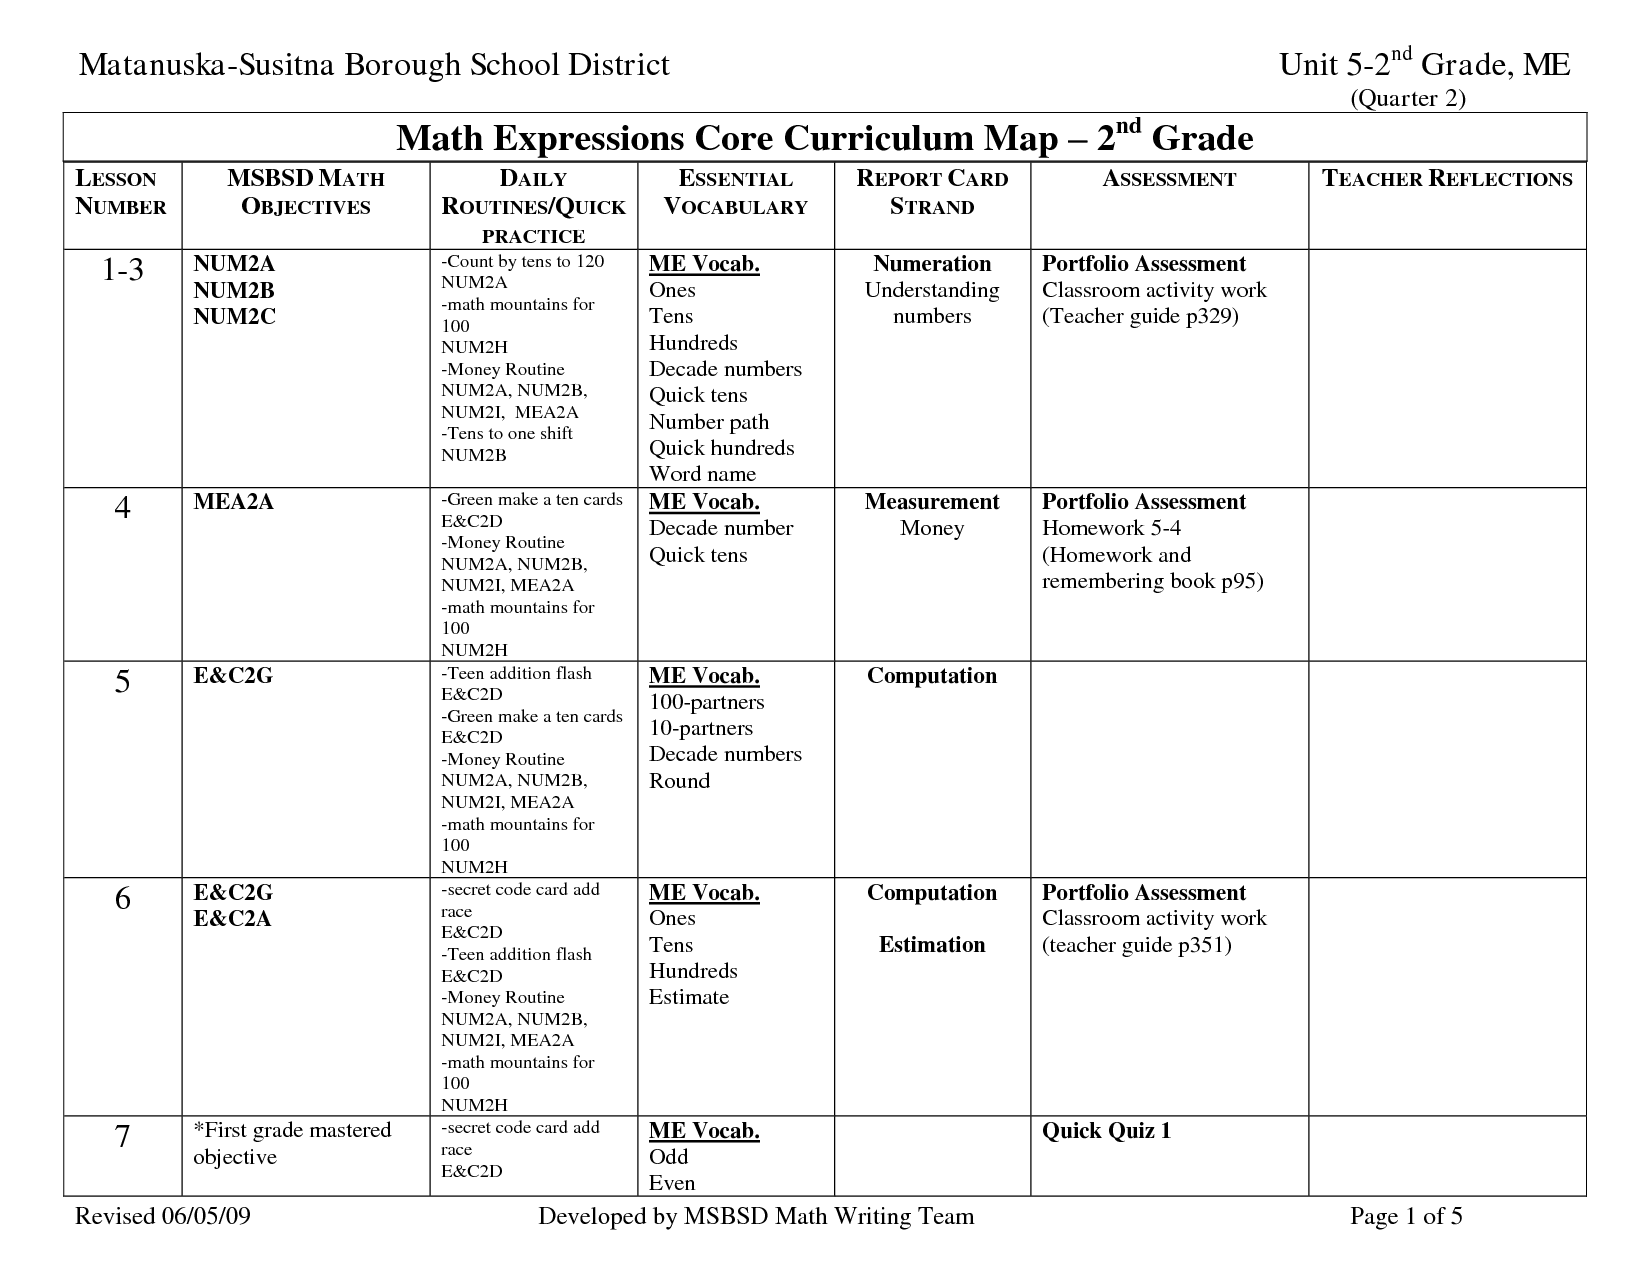 2nd Grade Math Curriculum Map Pictures To Pin